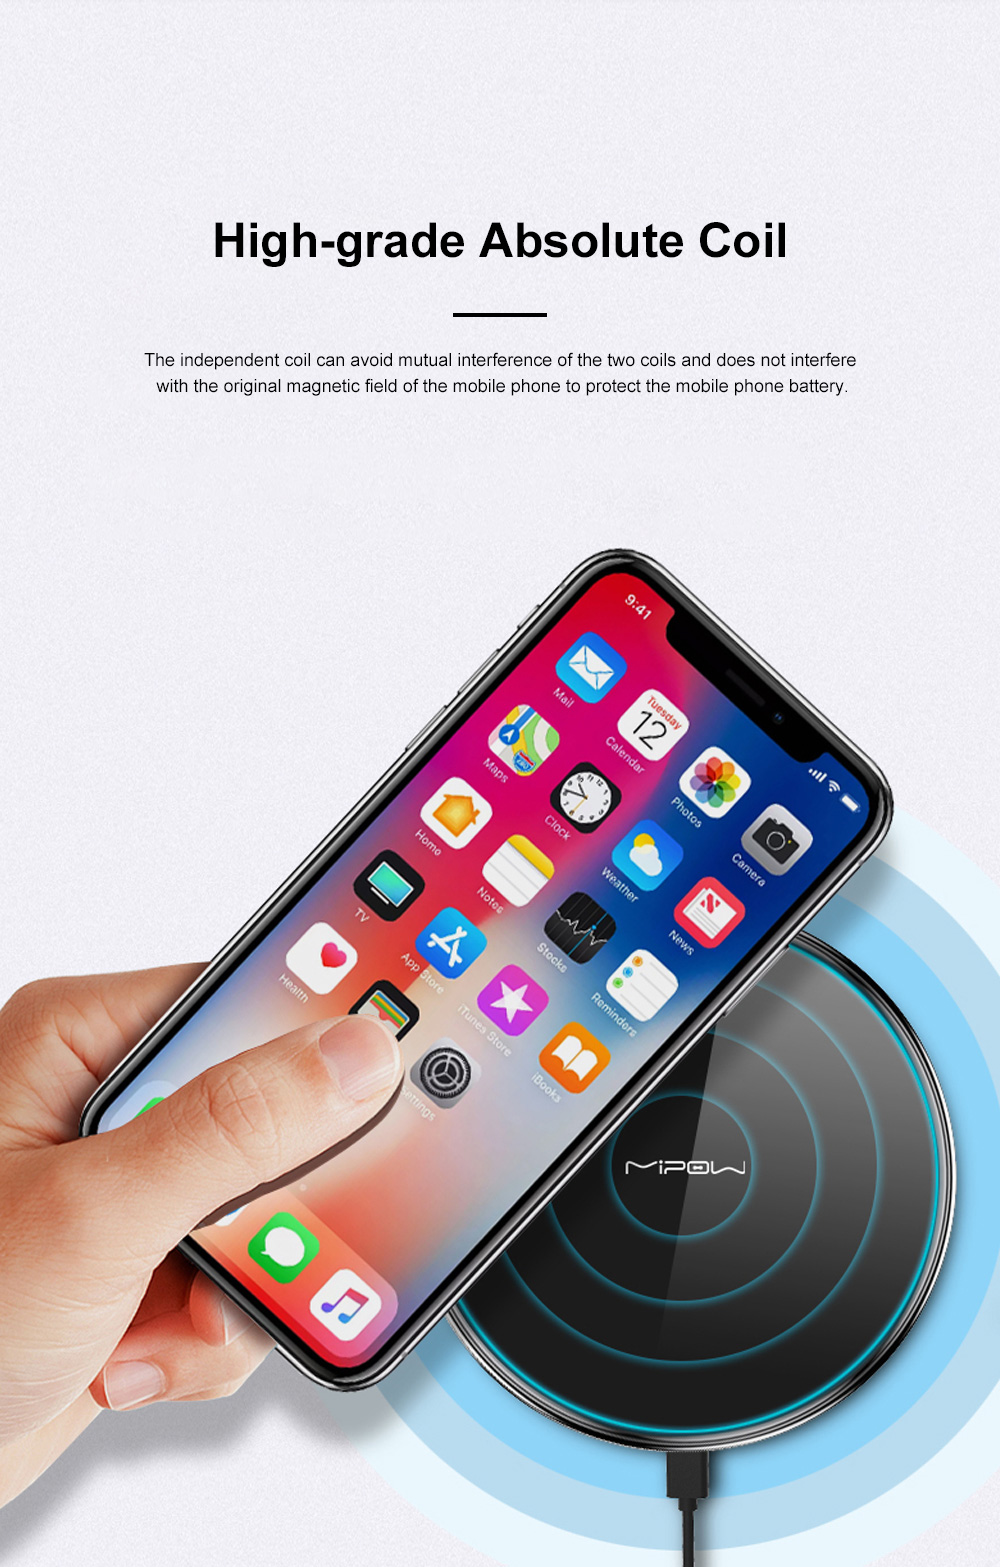 MIPOW Thin Portable Zinc Alloy Tempered Glass Quick Charging Wireless Charger for iPhone Xiaomi Samsung Huawei Nokia 4